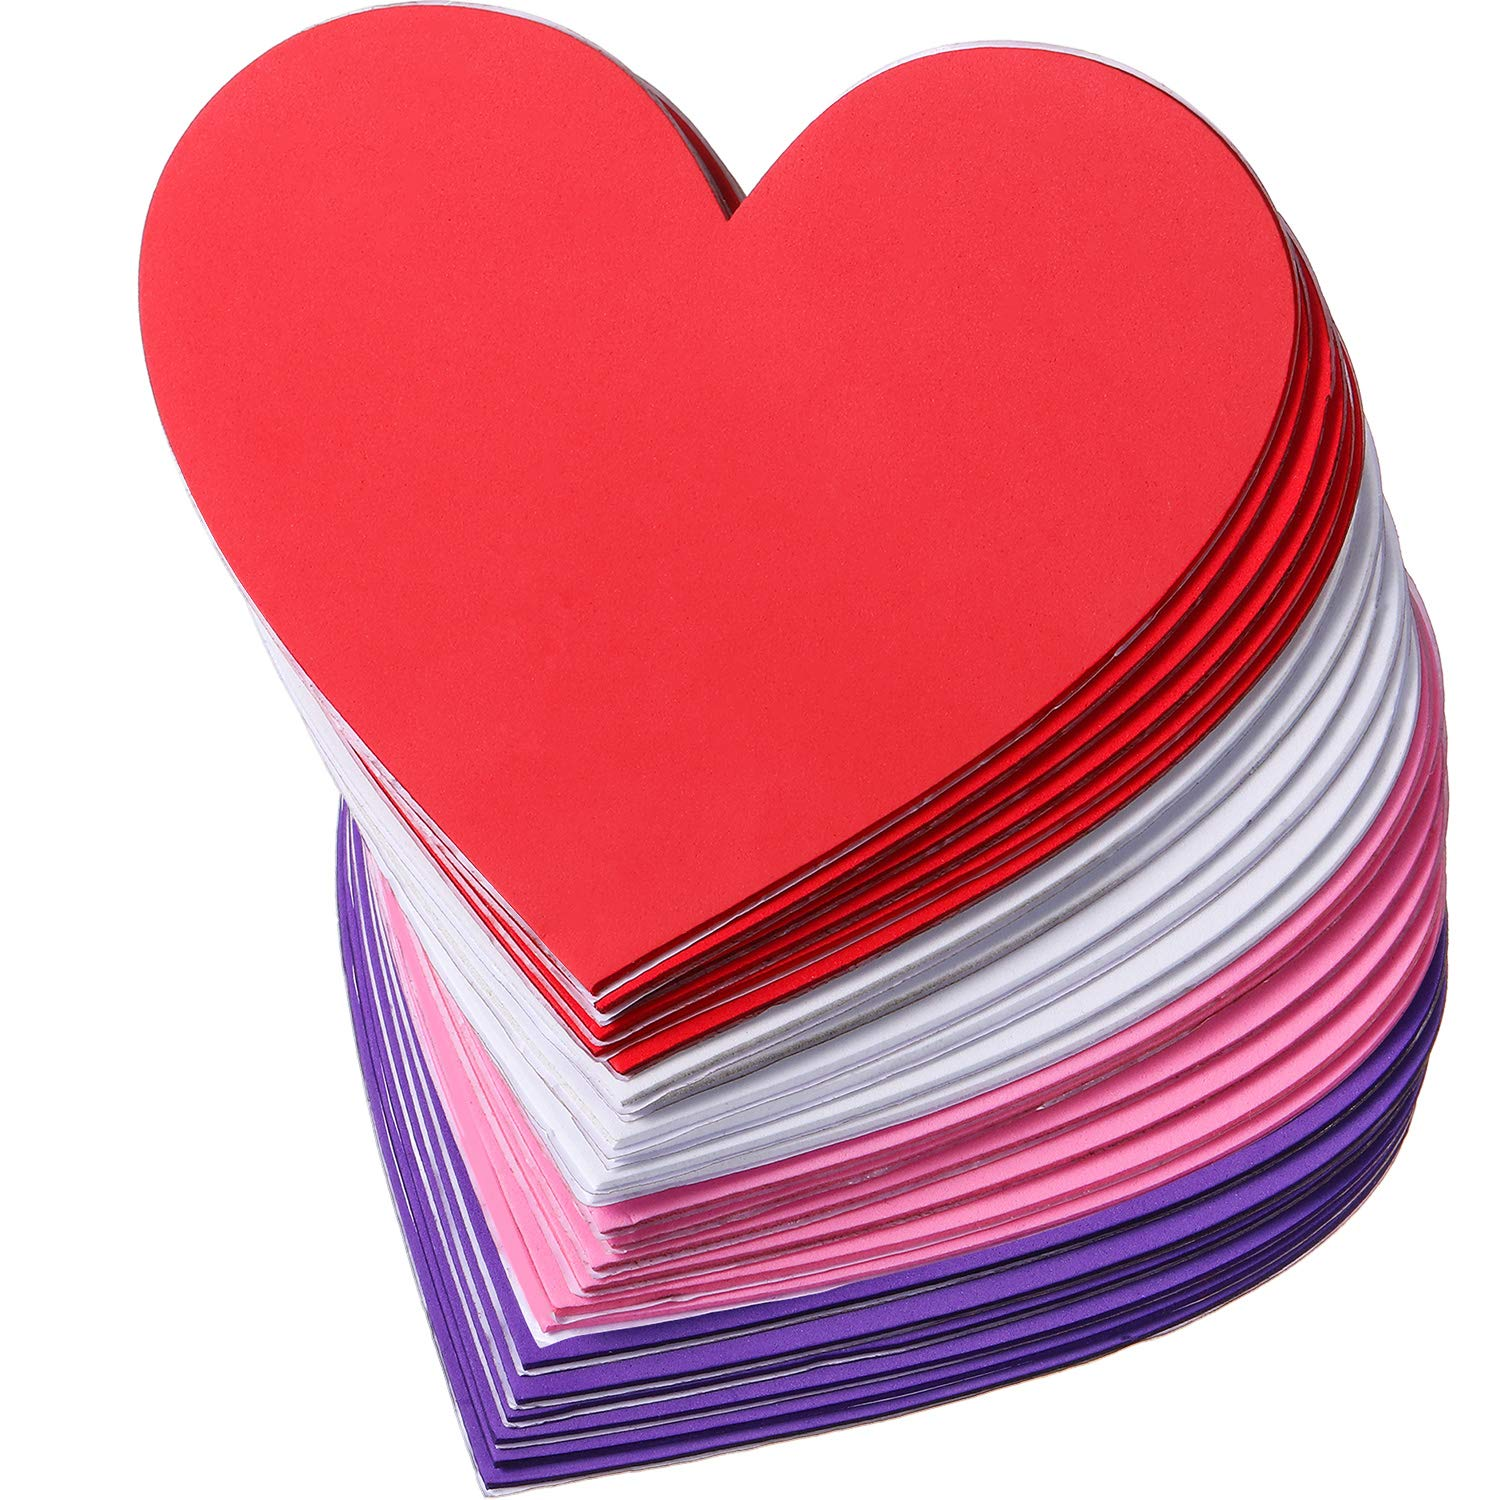 Hestya 24 Pieces 6 Inches Heart Foam Stickers Large Heart Shaped Stickers Self Adhesive Hearts Stickers for Valentine's Day Mother's Day DIY Crafts Heart Stickers, 4 Colors